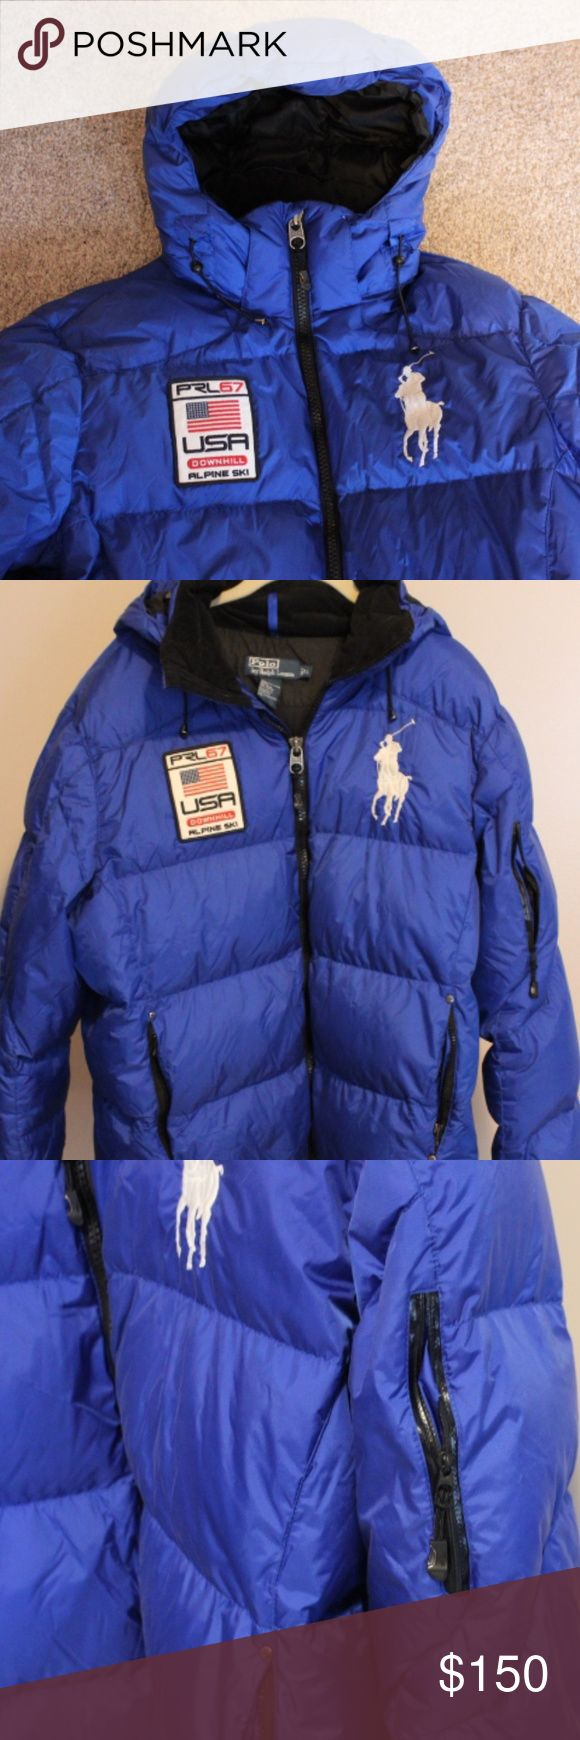 Down olymplic Polo jacket Get ready for the Olympics in style.  Super warm 80% down filled.  Zipper pockets on sleeve, inside and two front pockets.  Detachable hood.  Could be worn as women size L.  Slightly smaller size if men's .  Jacket like new.  Warm warm warm. Polo by Ralph Lauren Jackets & Coats Puffers